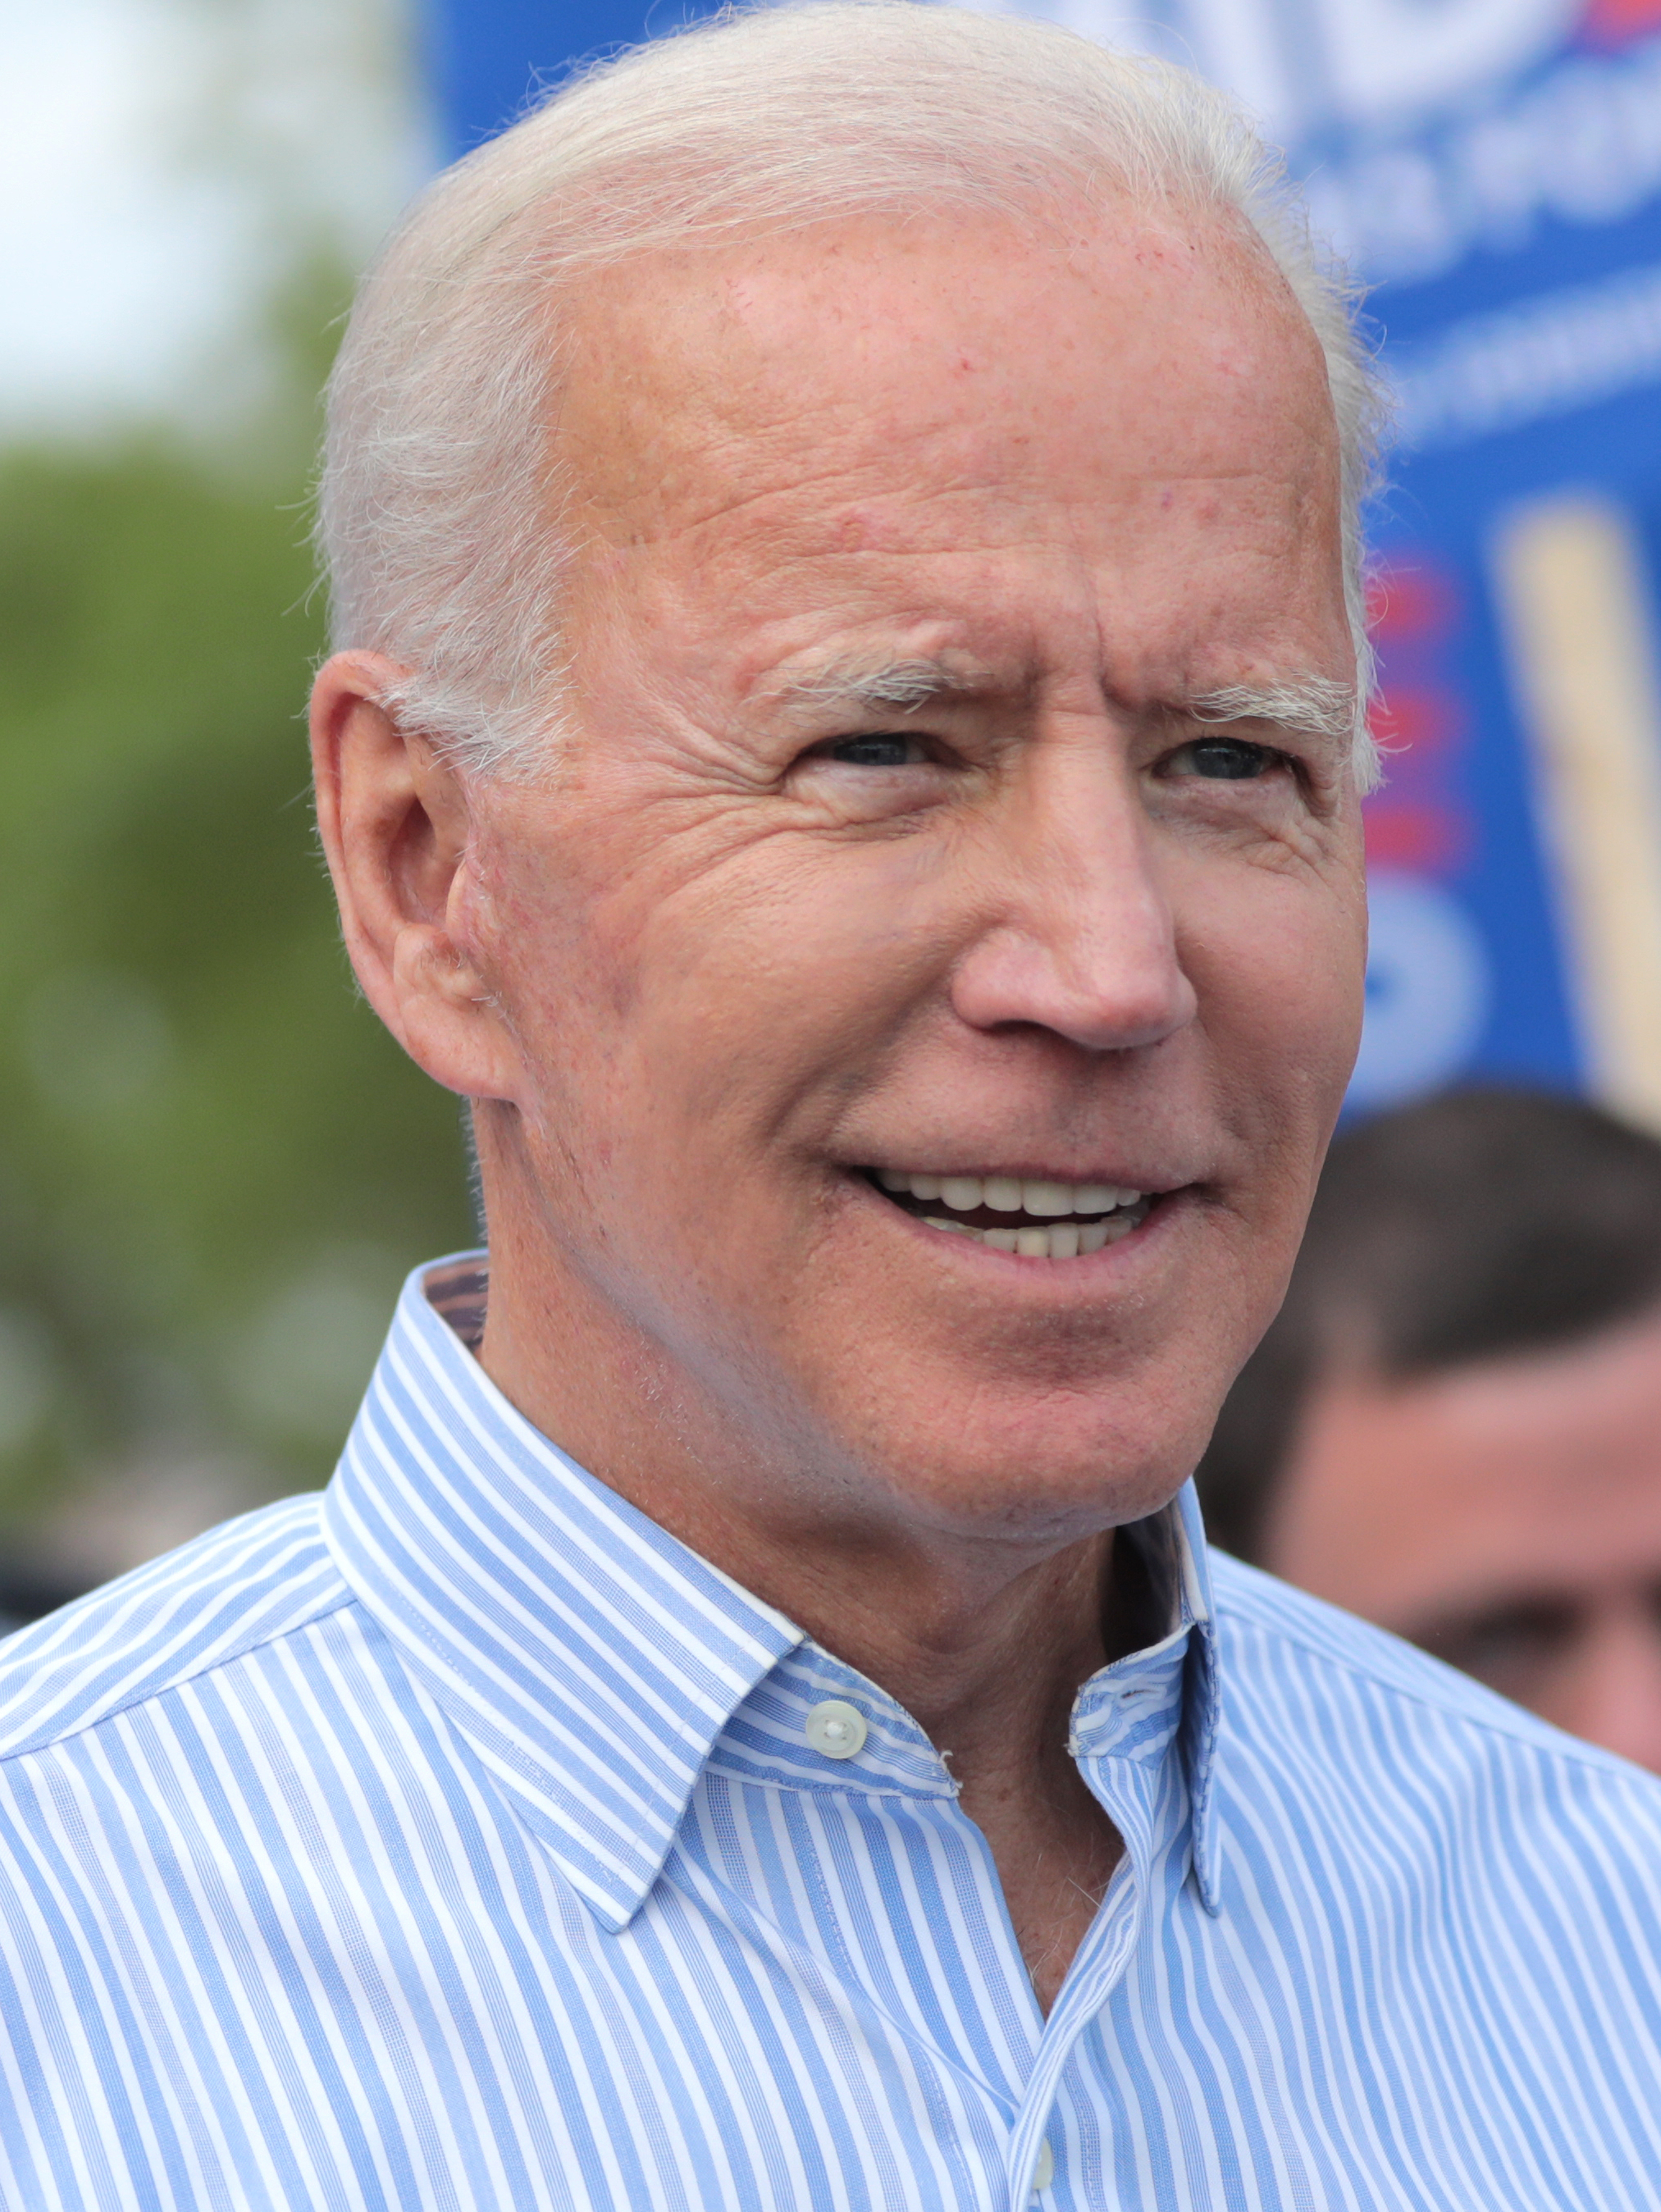 File:Joe Biden (48554137807) (cropped).jpg - Wikimedia Commons